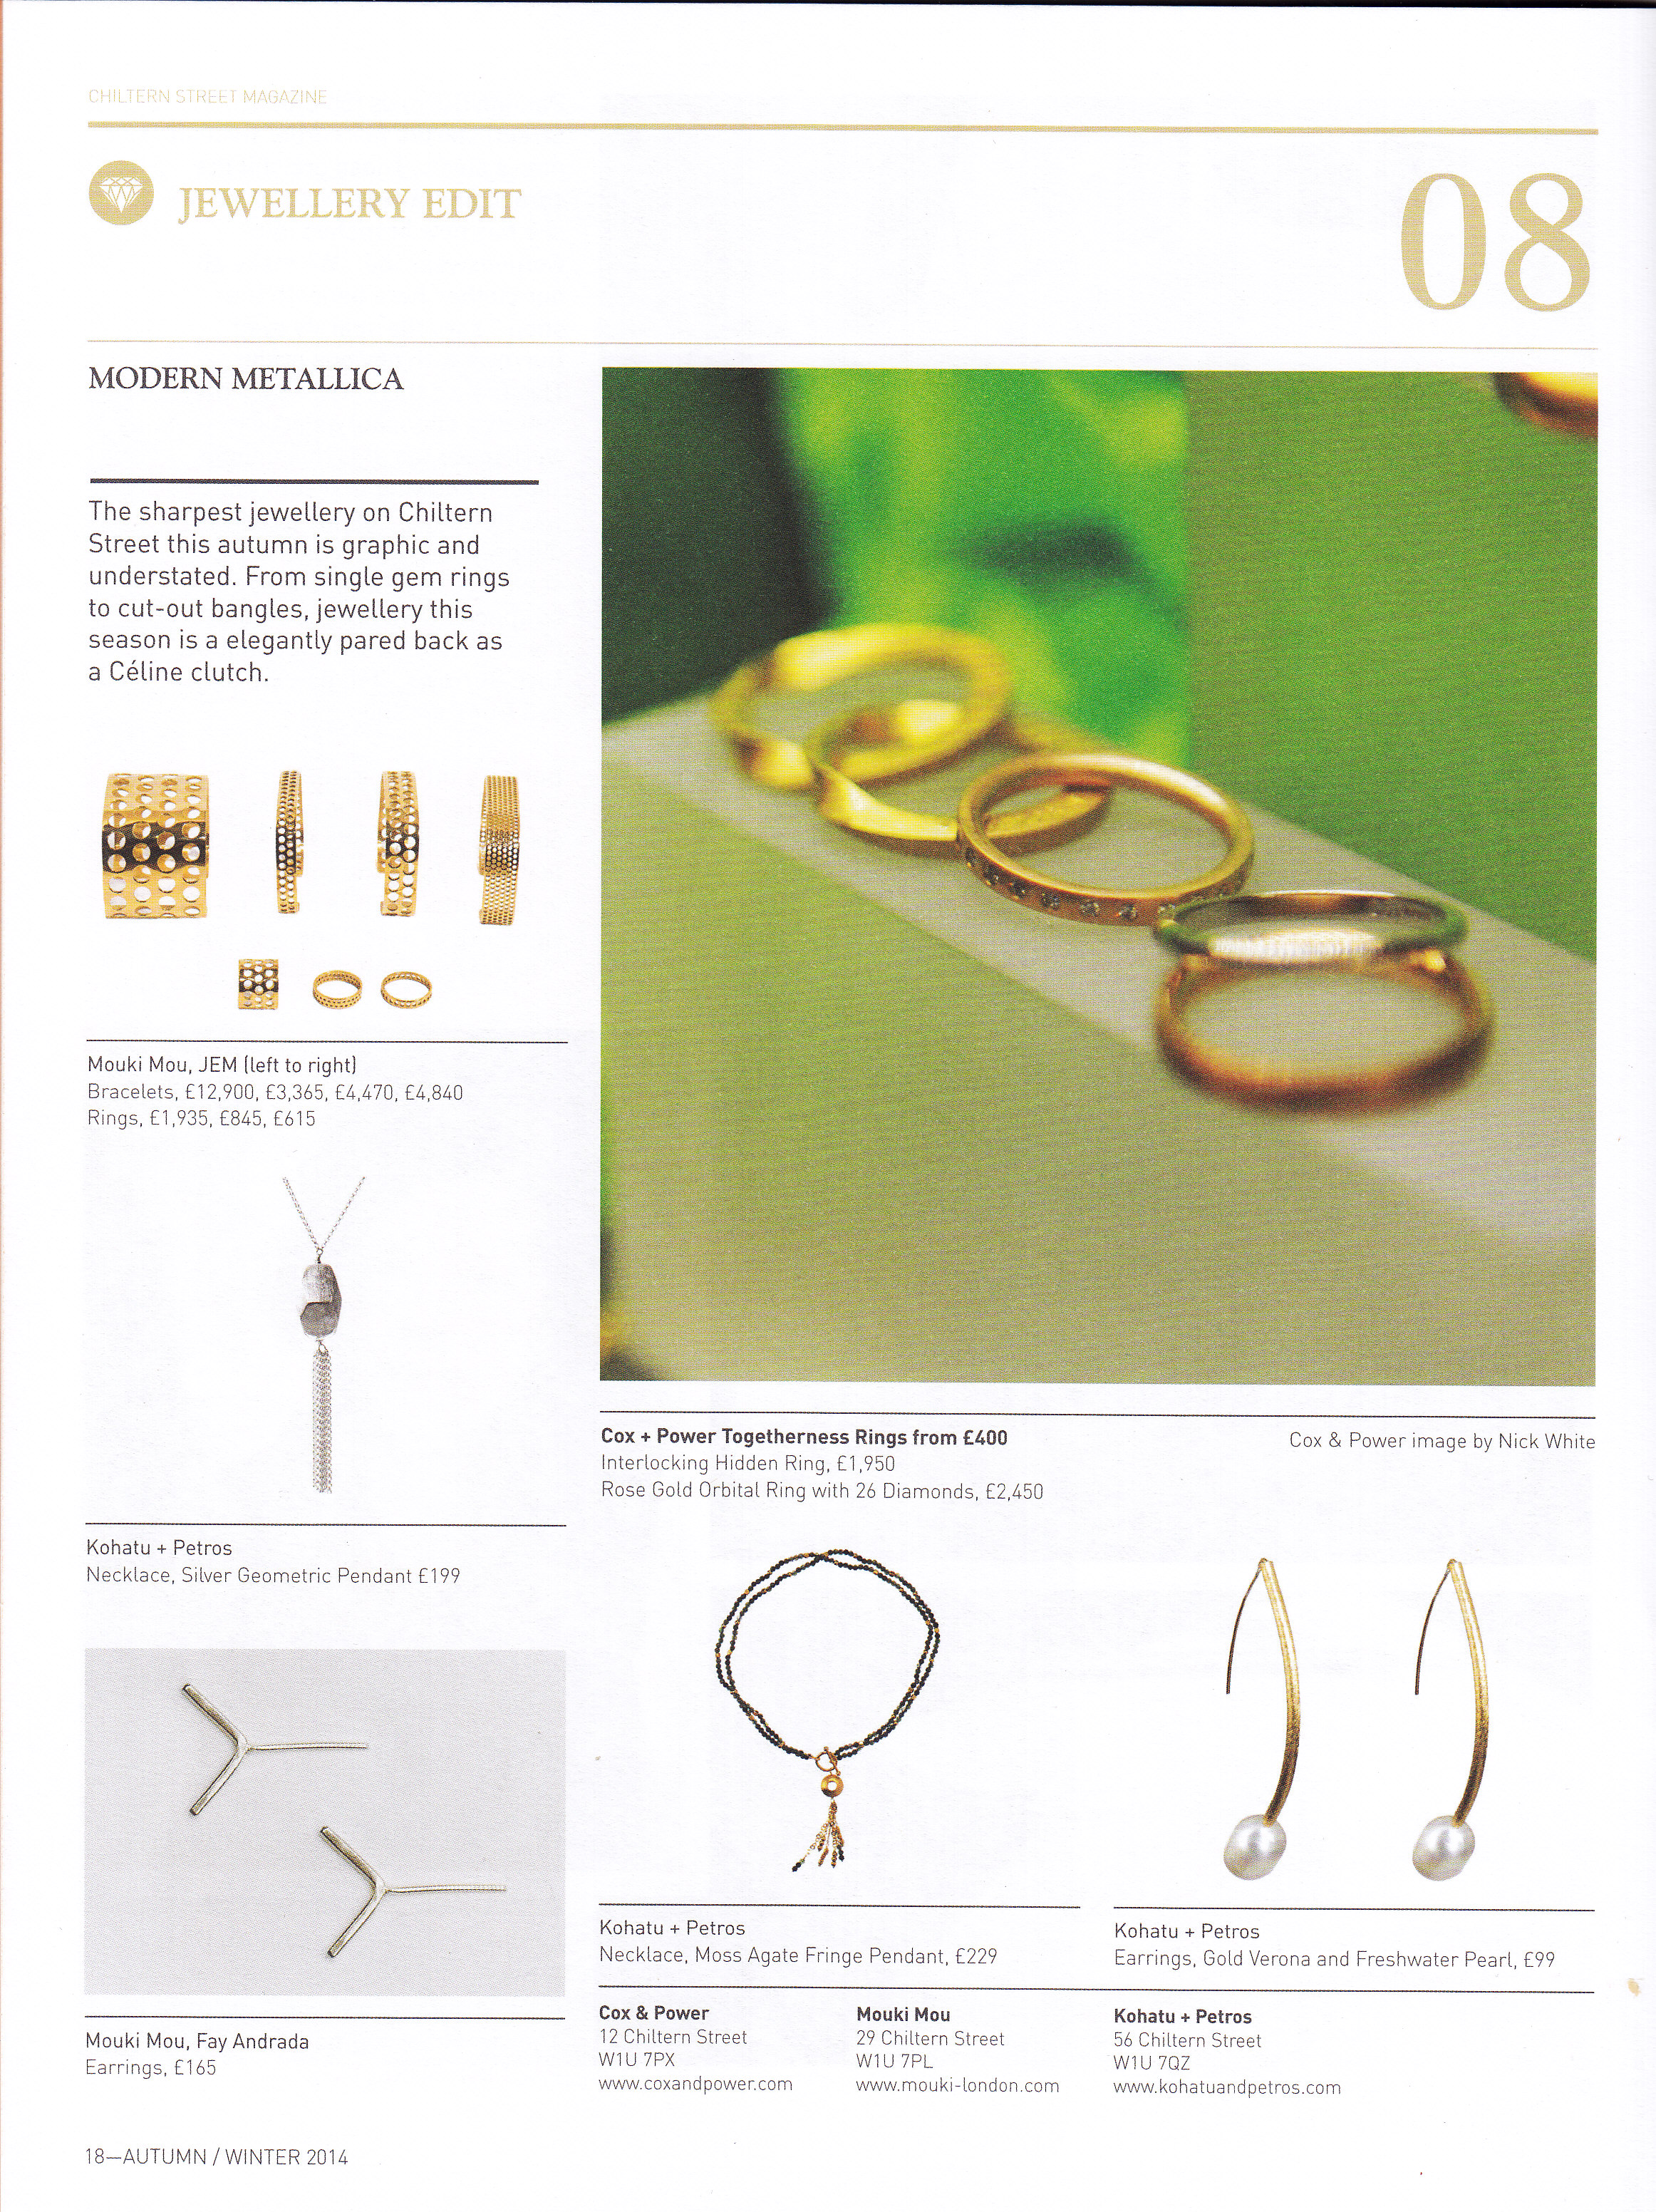 Jewellery Edit chiltern St Mag.jpg